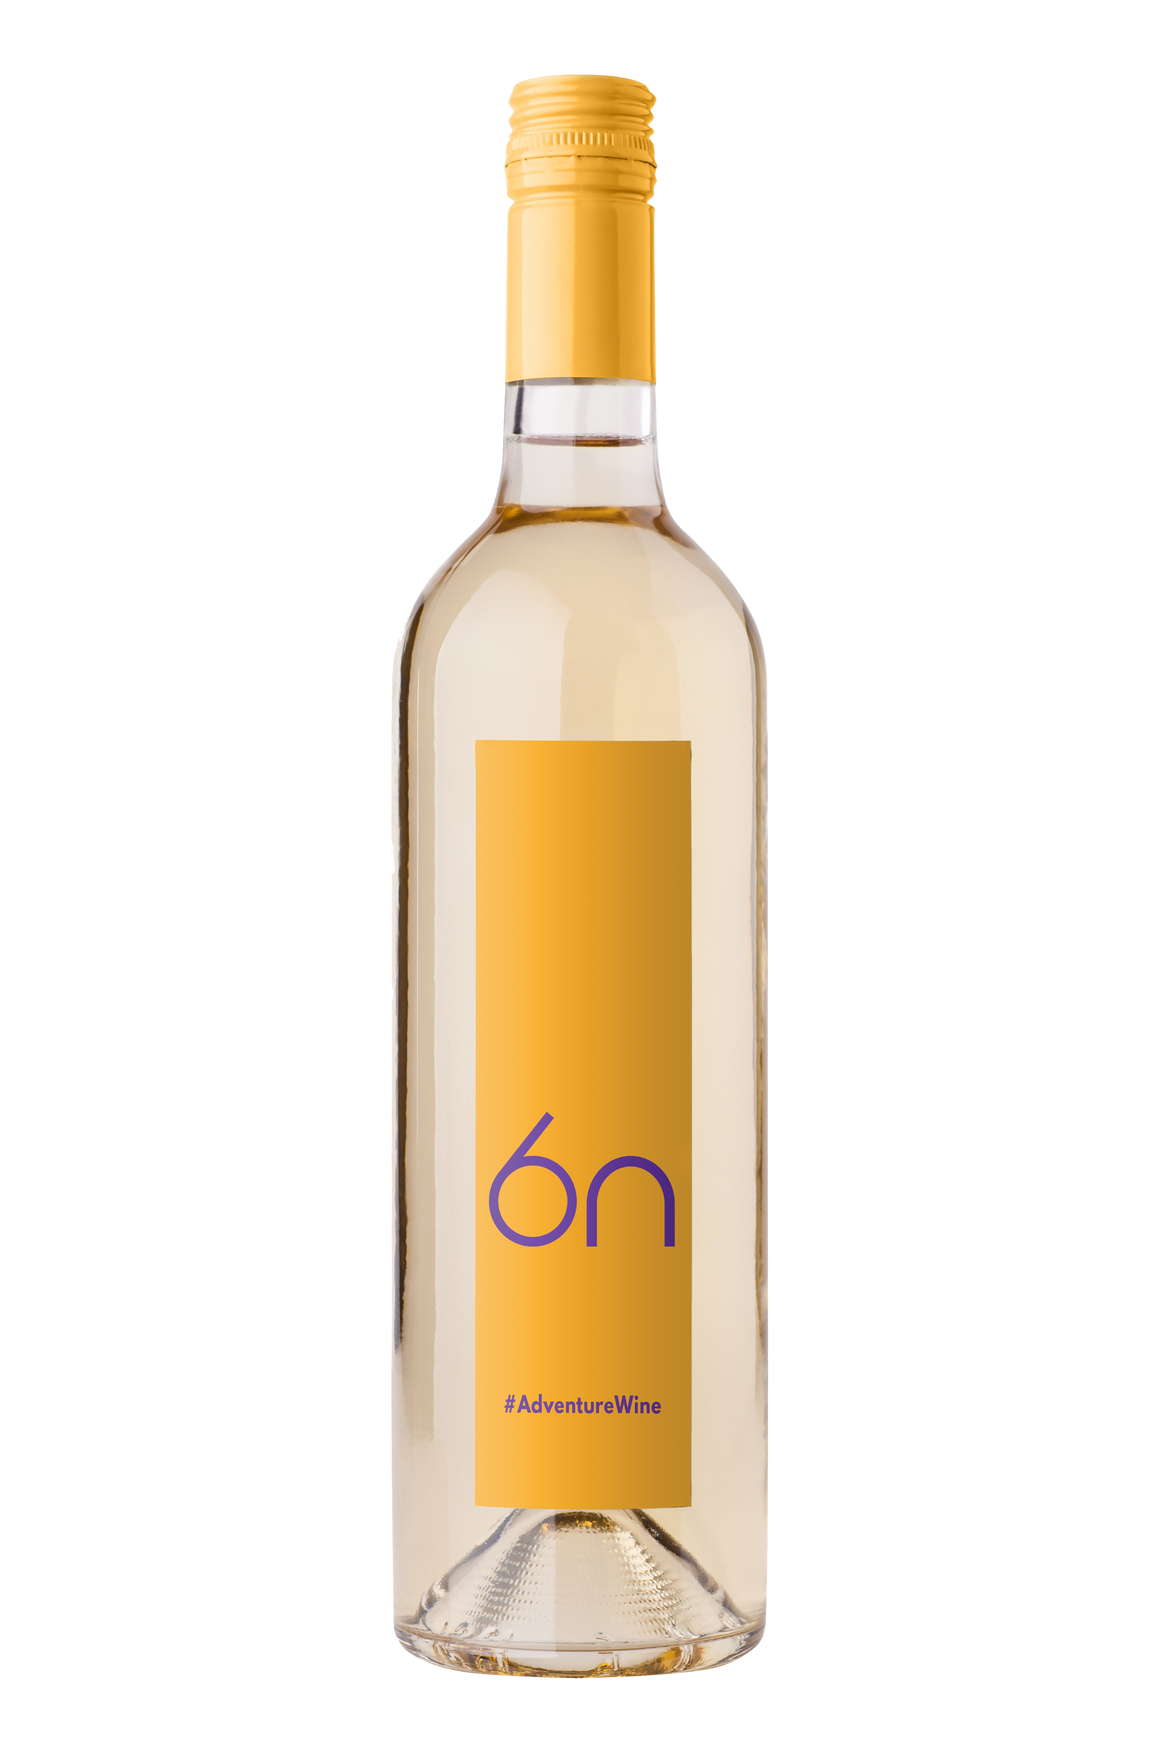 Chardonnay - 6n orange #Adventure